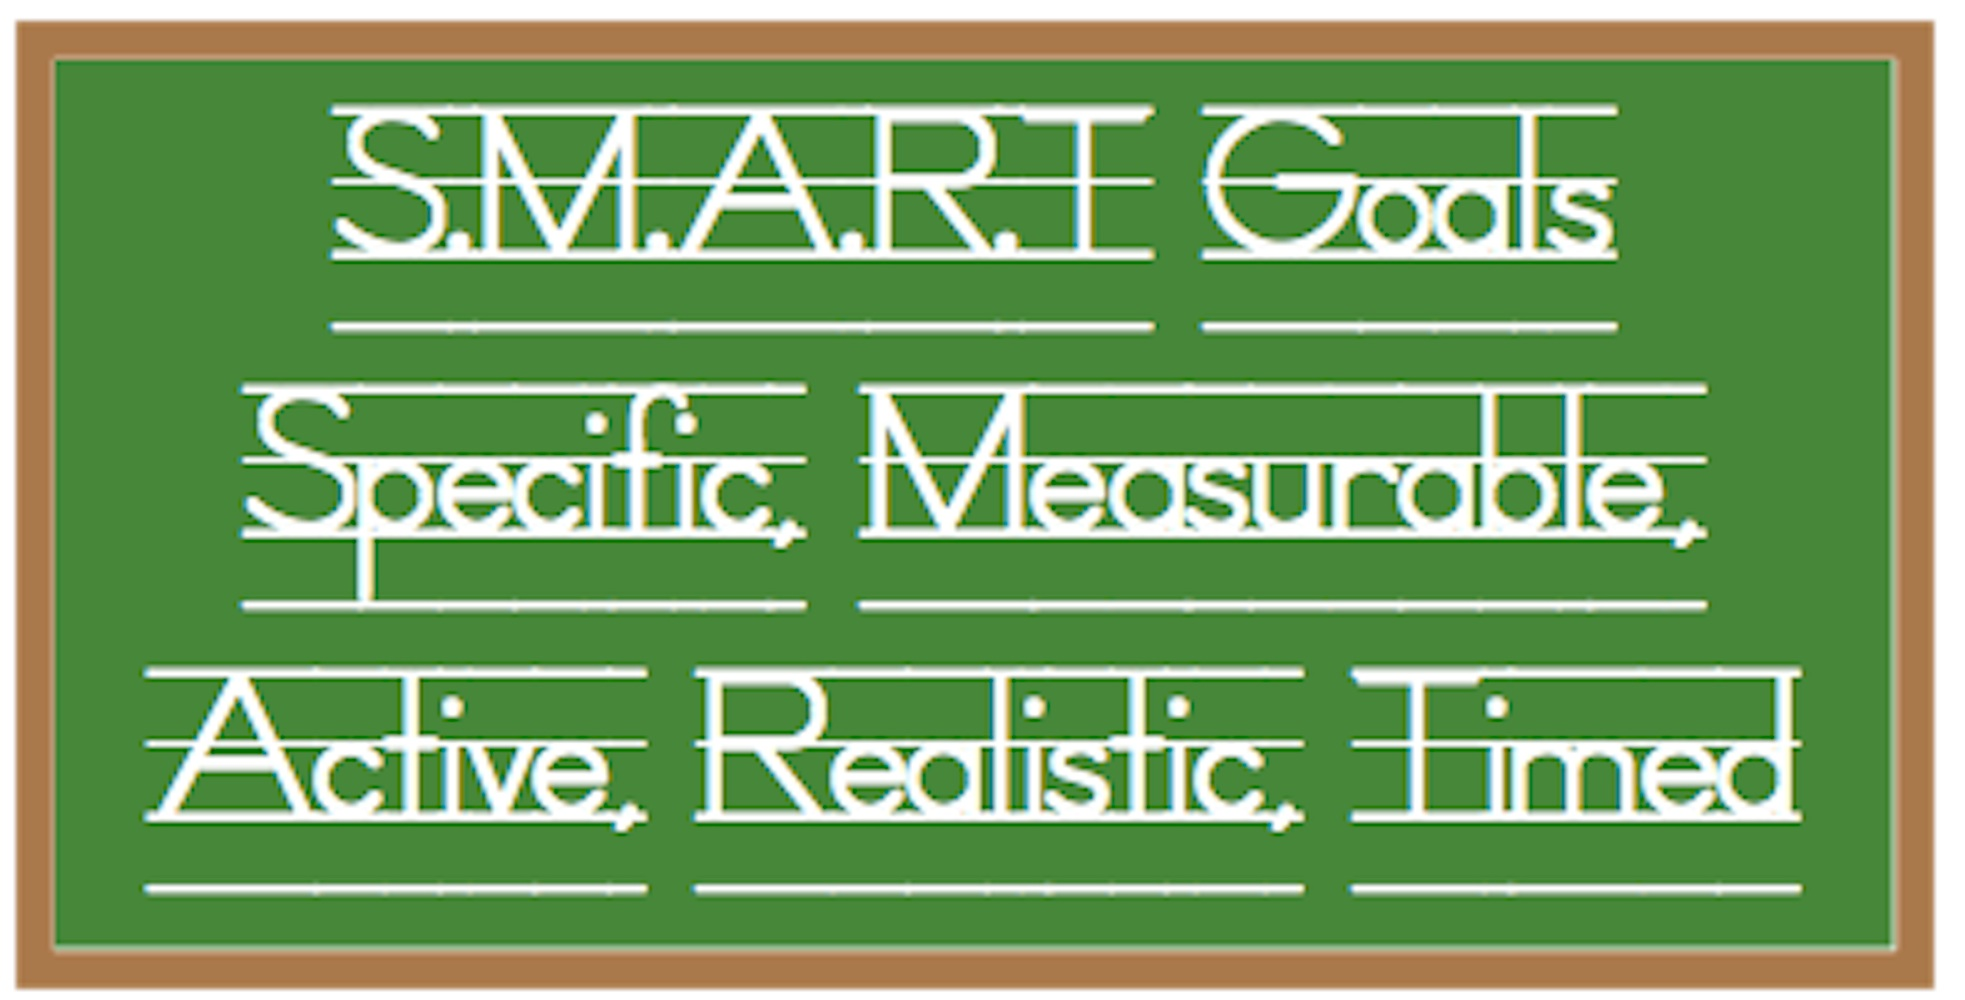 the school speech therapist share your s m a r t professional development goals